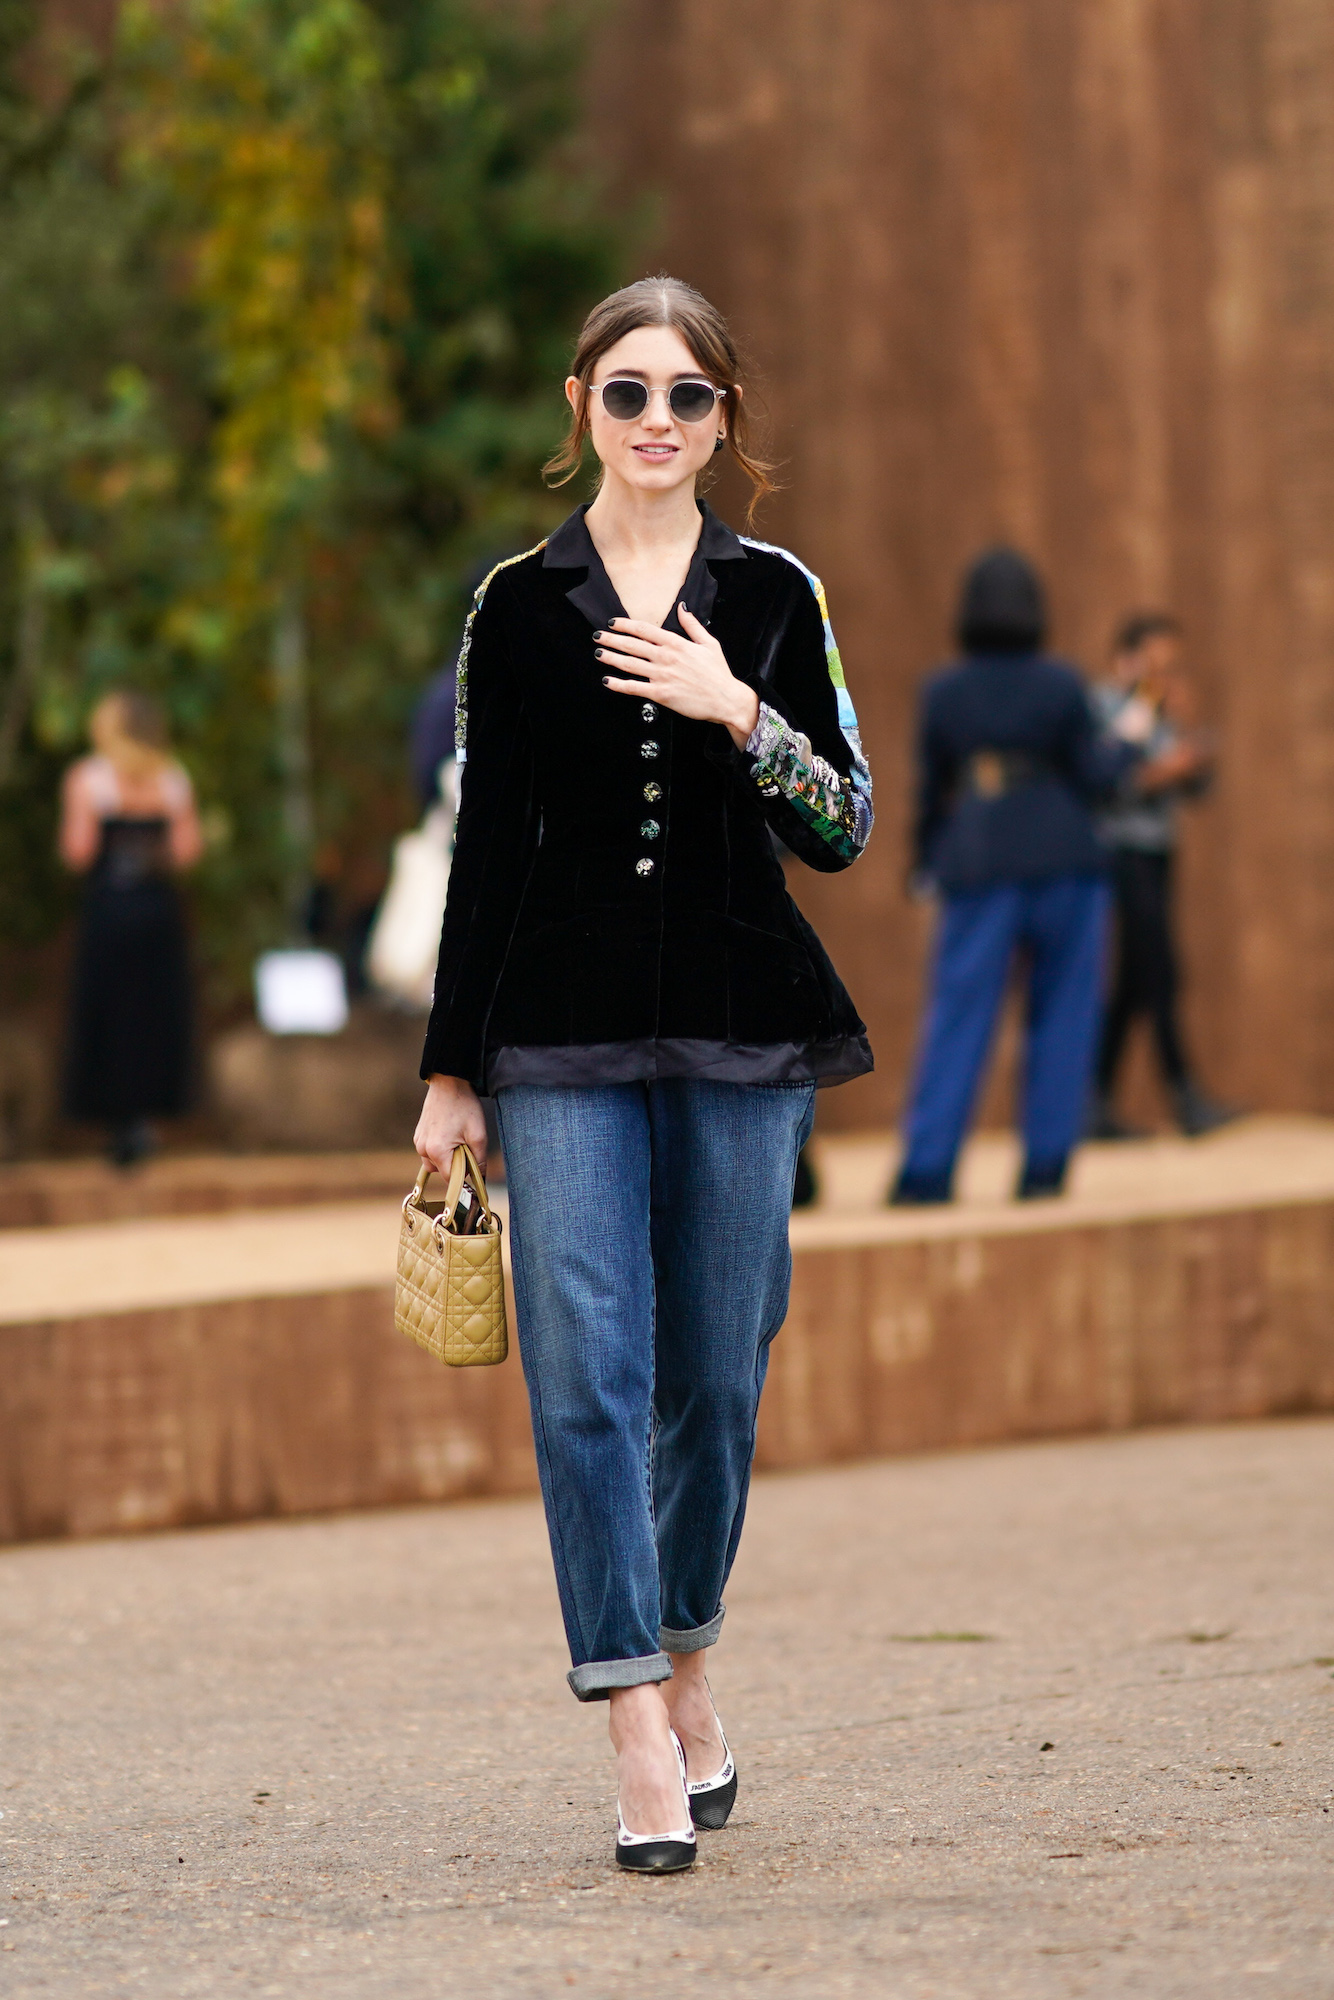 "PARIS, FRANCE - SEPTEMBER 24: Actress Natalia Dyer who portrays the character ""Nancy Wheeler"" in the Netflix series ""Stranger Things"", wears sunglasses, a black top with printed colored sleeves, a yellow Lady Dior quilted bag, blue denim cropped jeans, pointy shoes, outside Dior, during Paris Fashion Week - Womenswear Spring Summer 2020, on September 24, 2019 in Paris, France. (Photo by Edward Berthelot/Getty Images)"